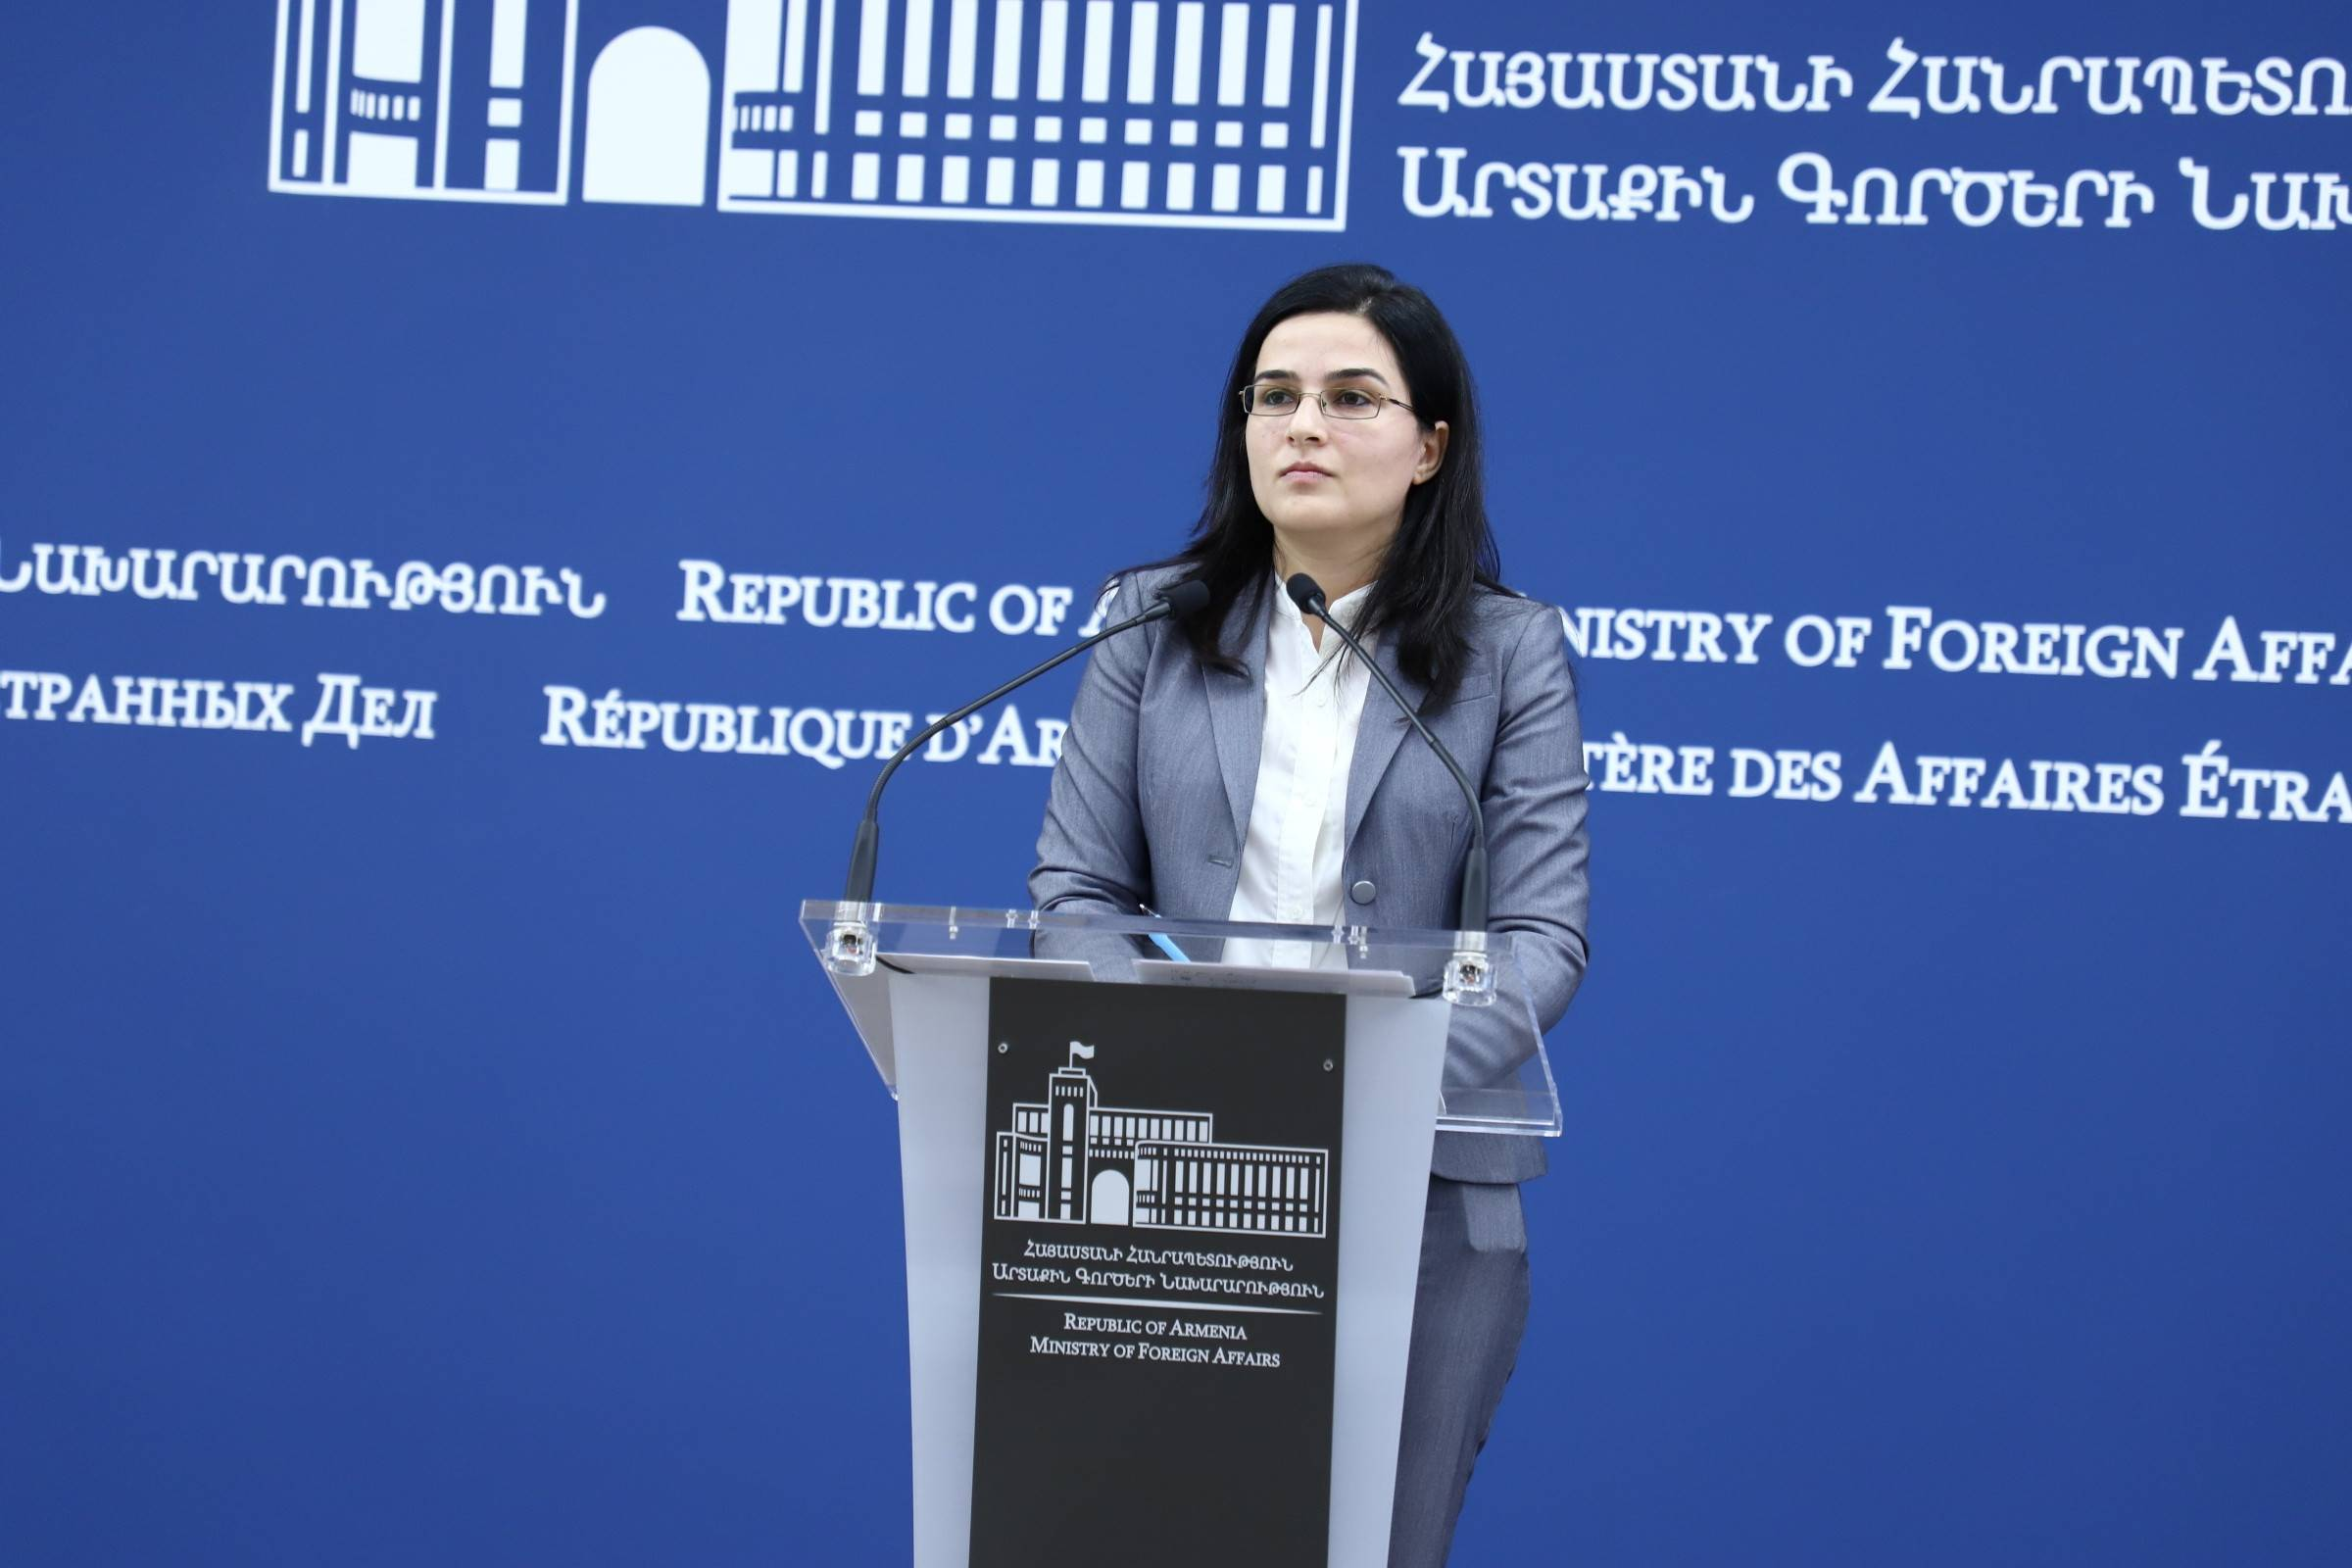 Comment of the MFA spokesperson Anna Naghdalyan on sanctions imposed on Iran